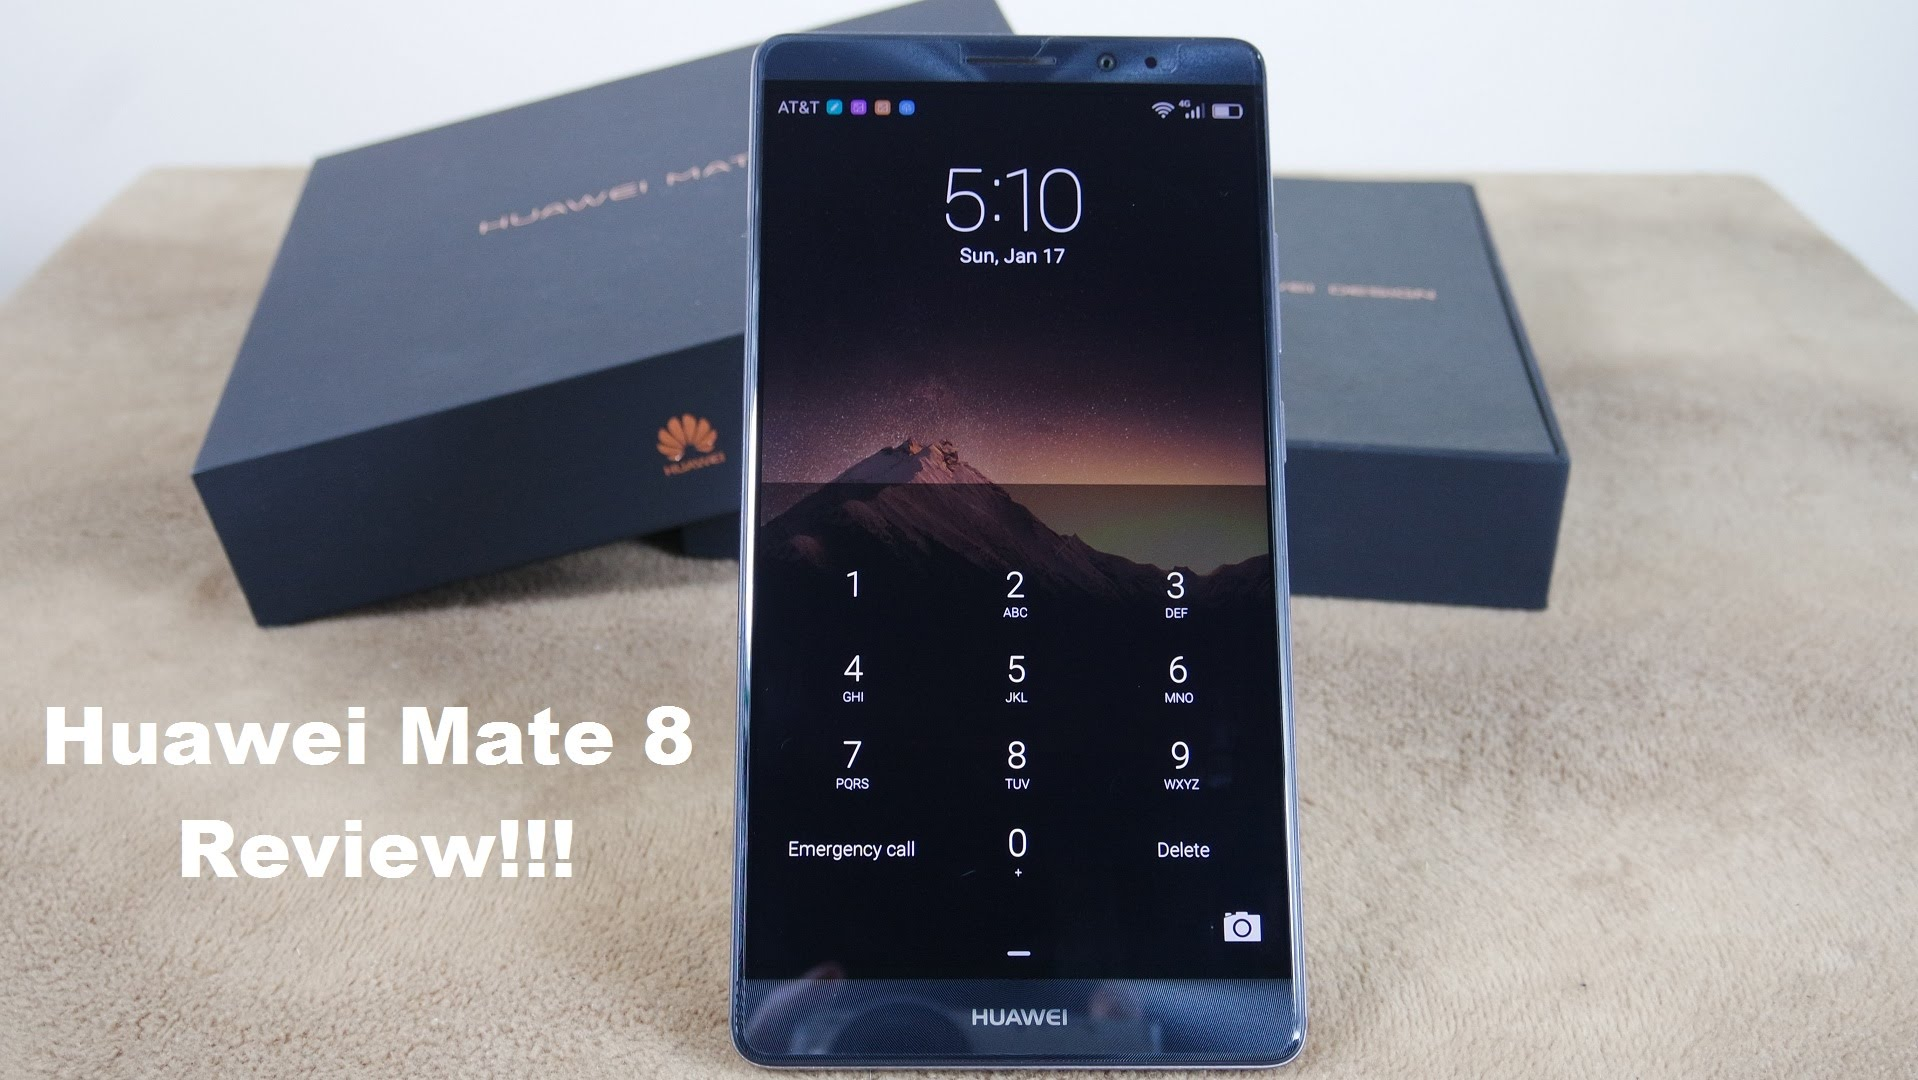 5 Reasons to buy the Huawei Mate 8